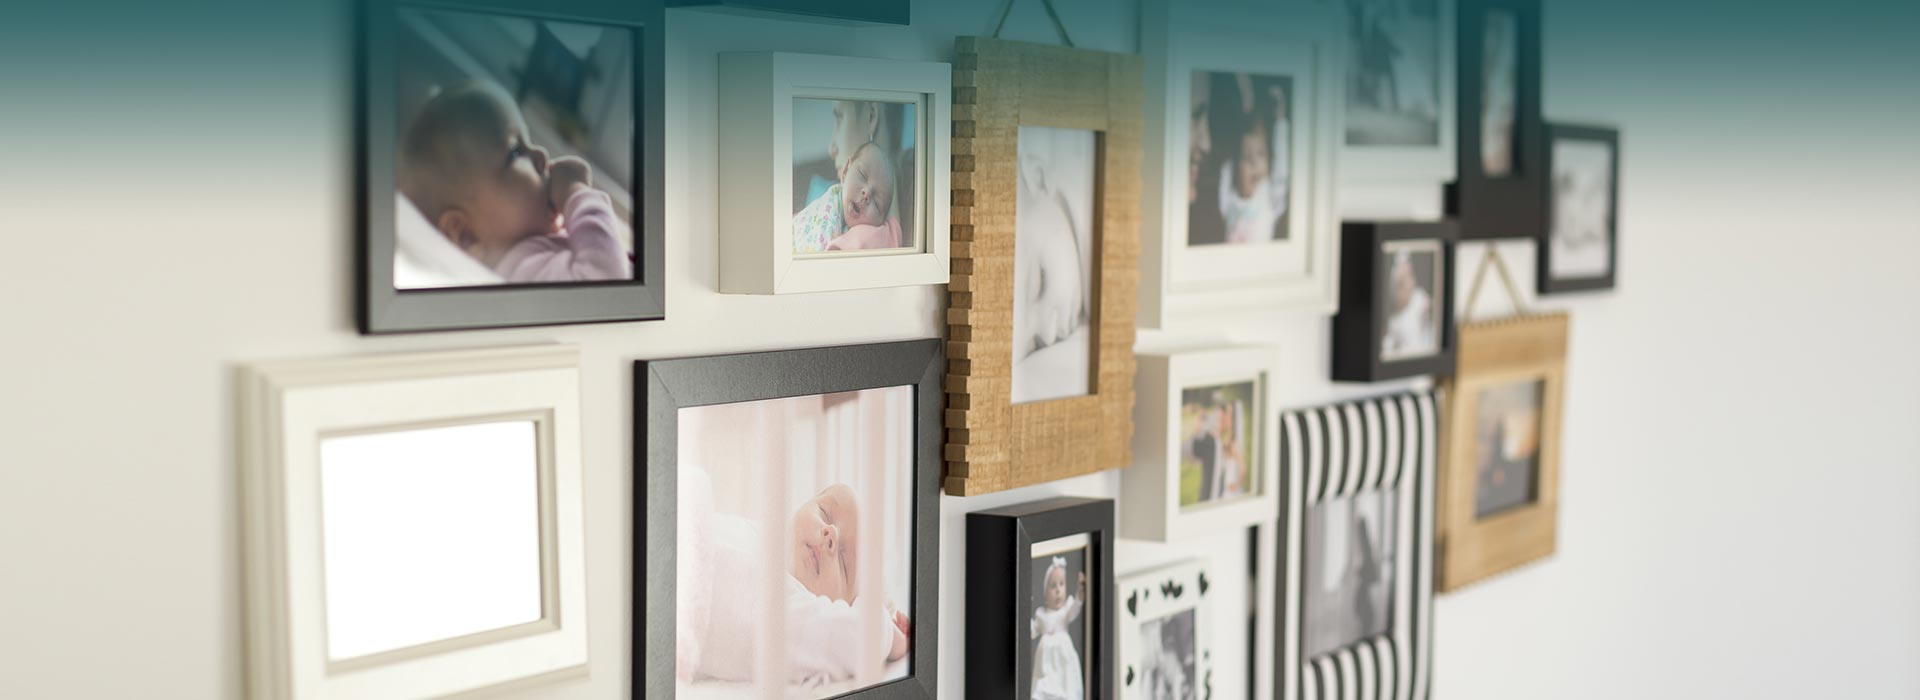 Transform your walls with family memories!